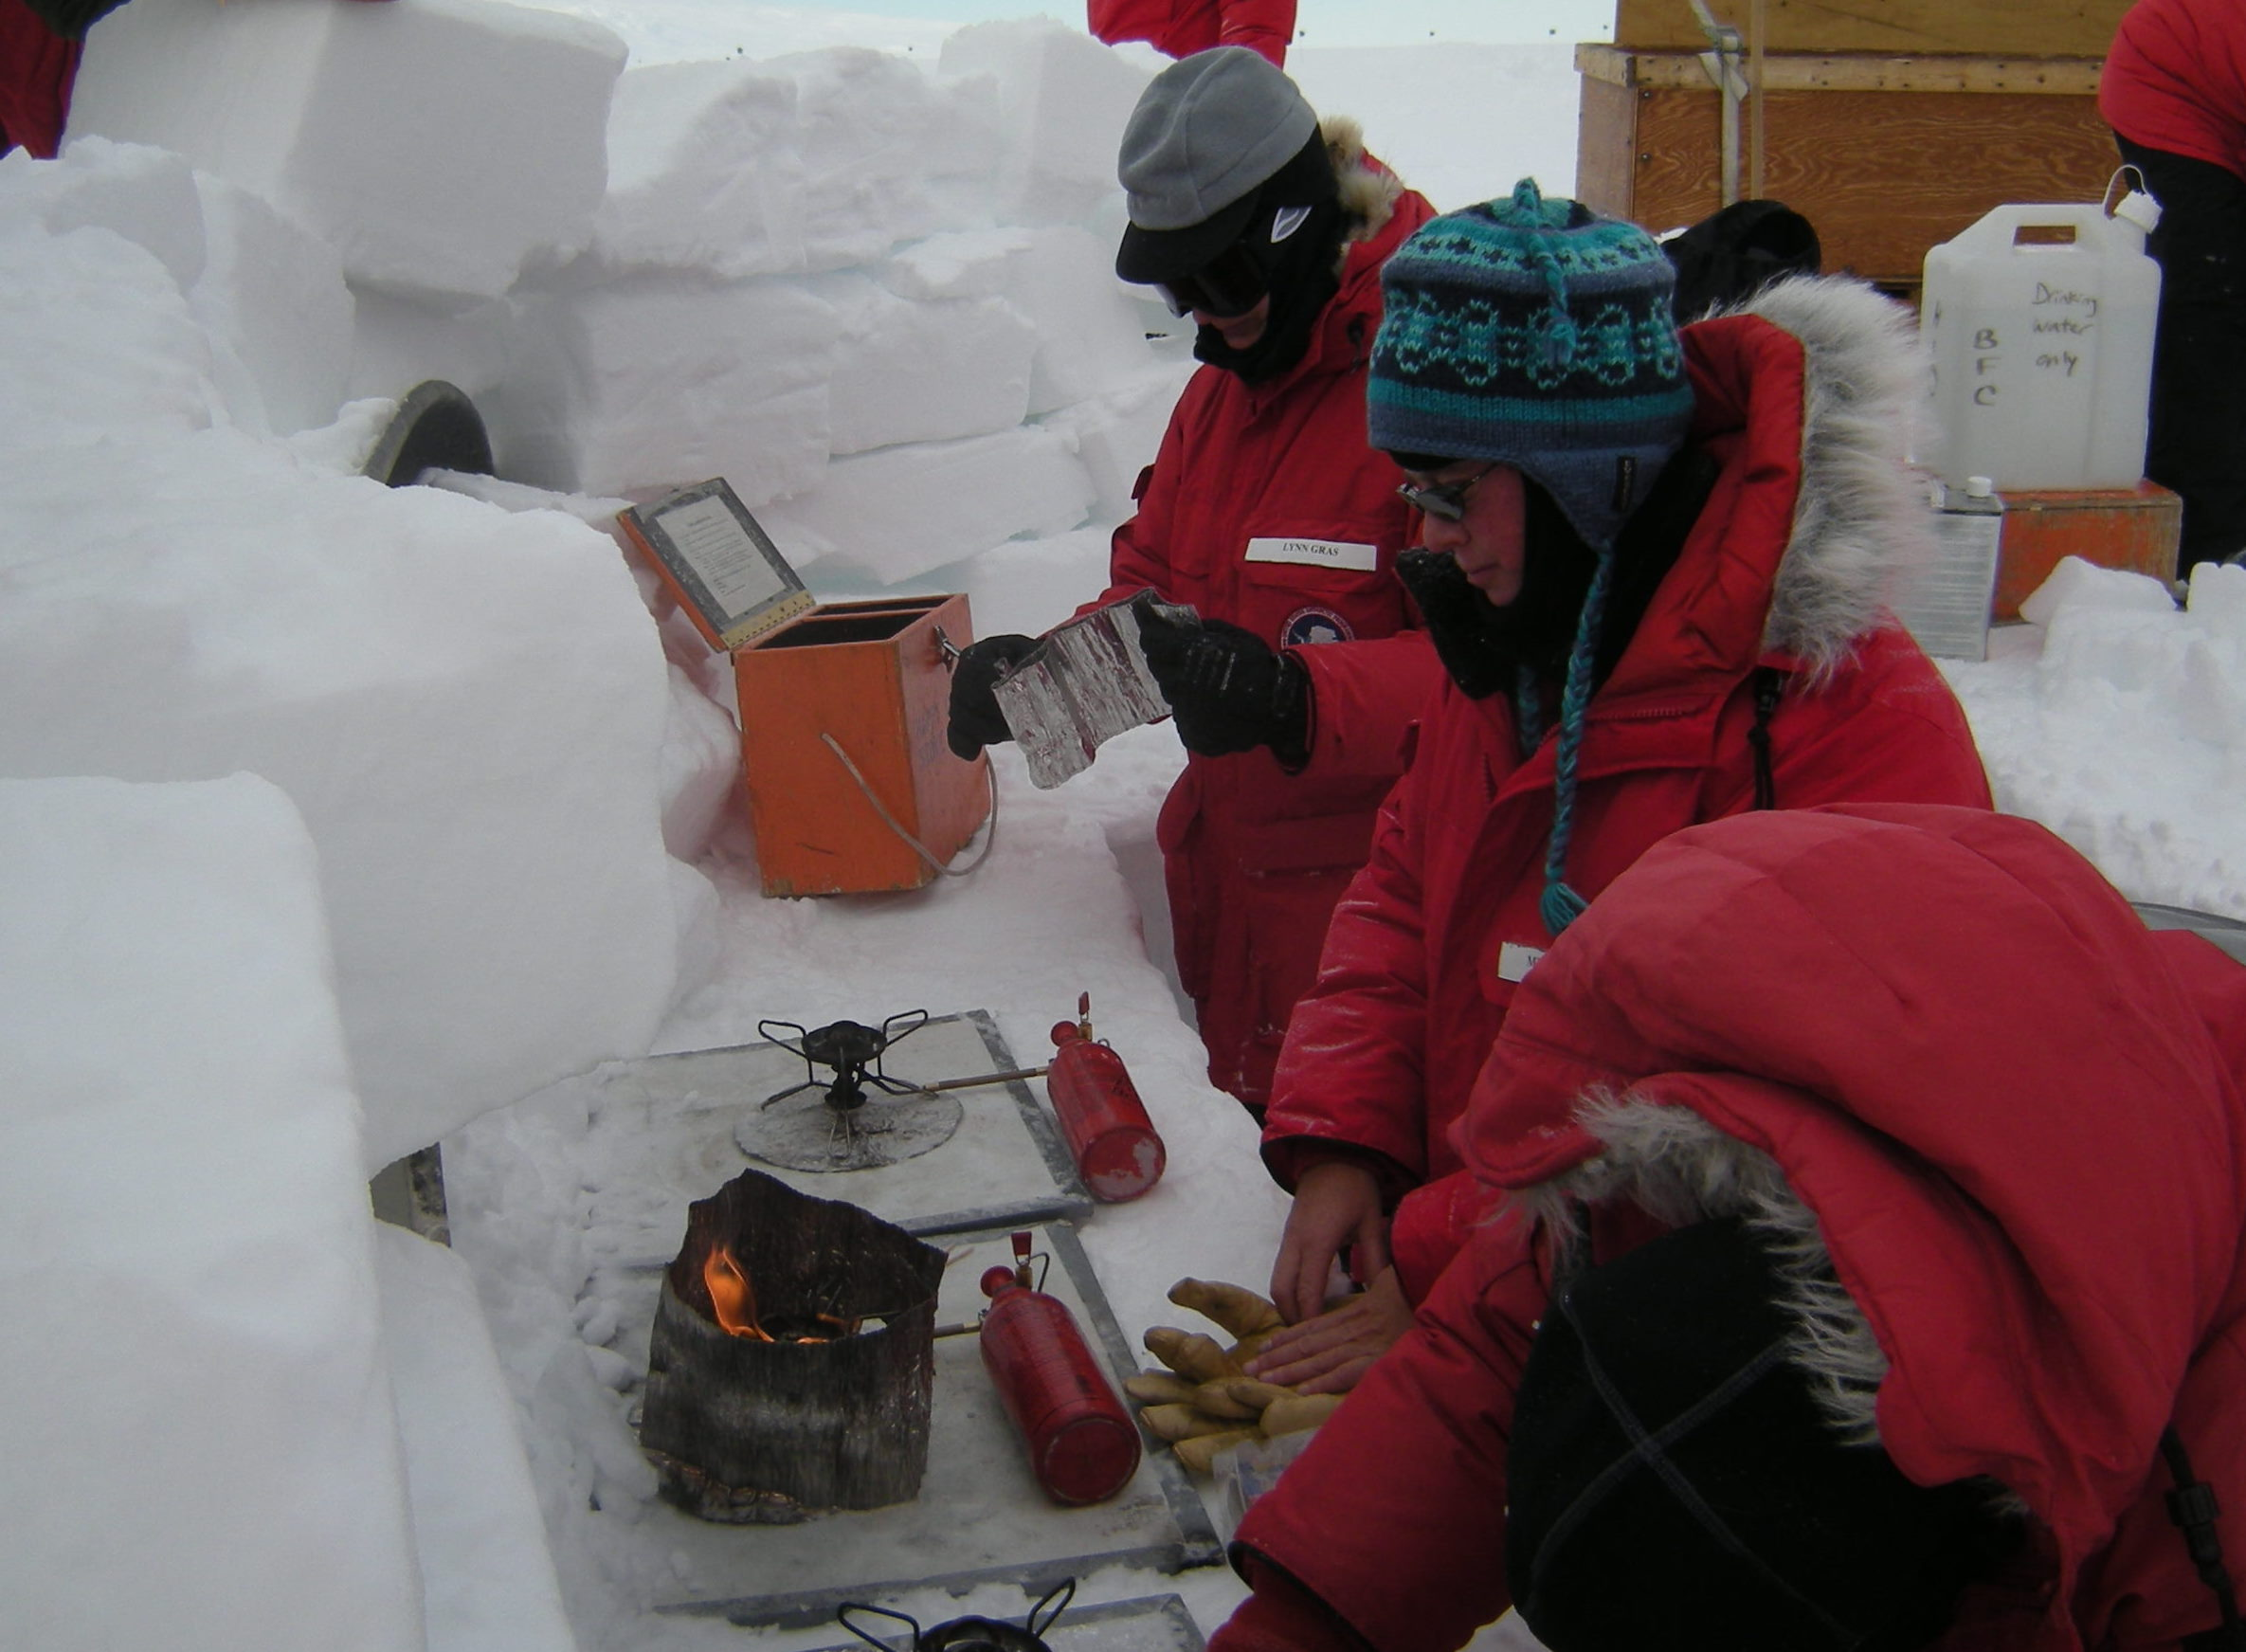 Michelle fires up a stove in the snow galley